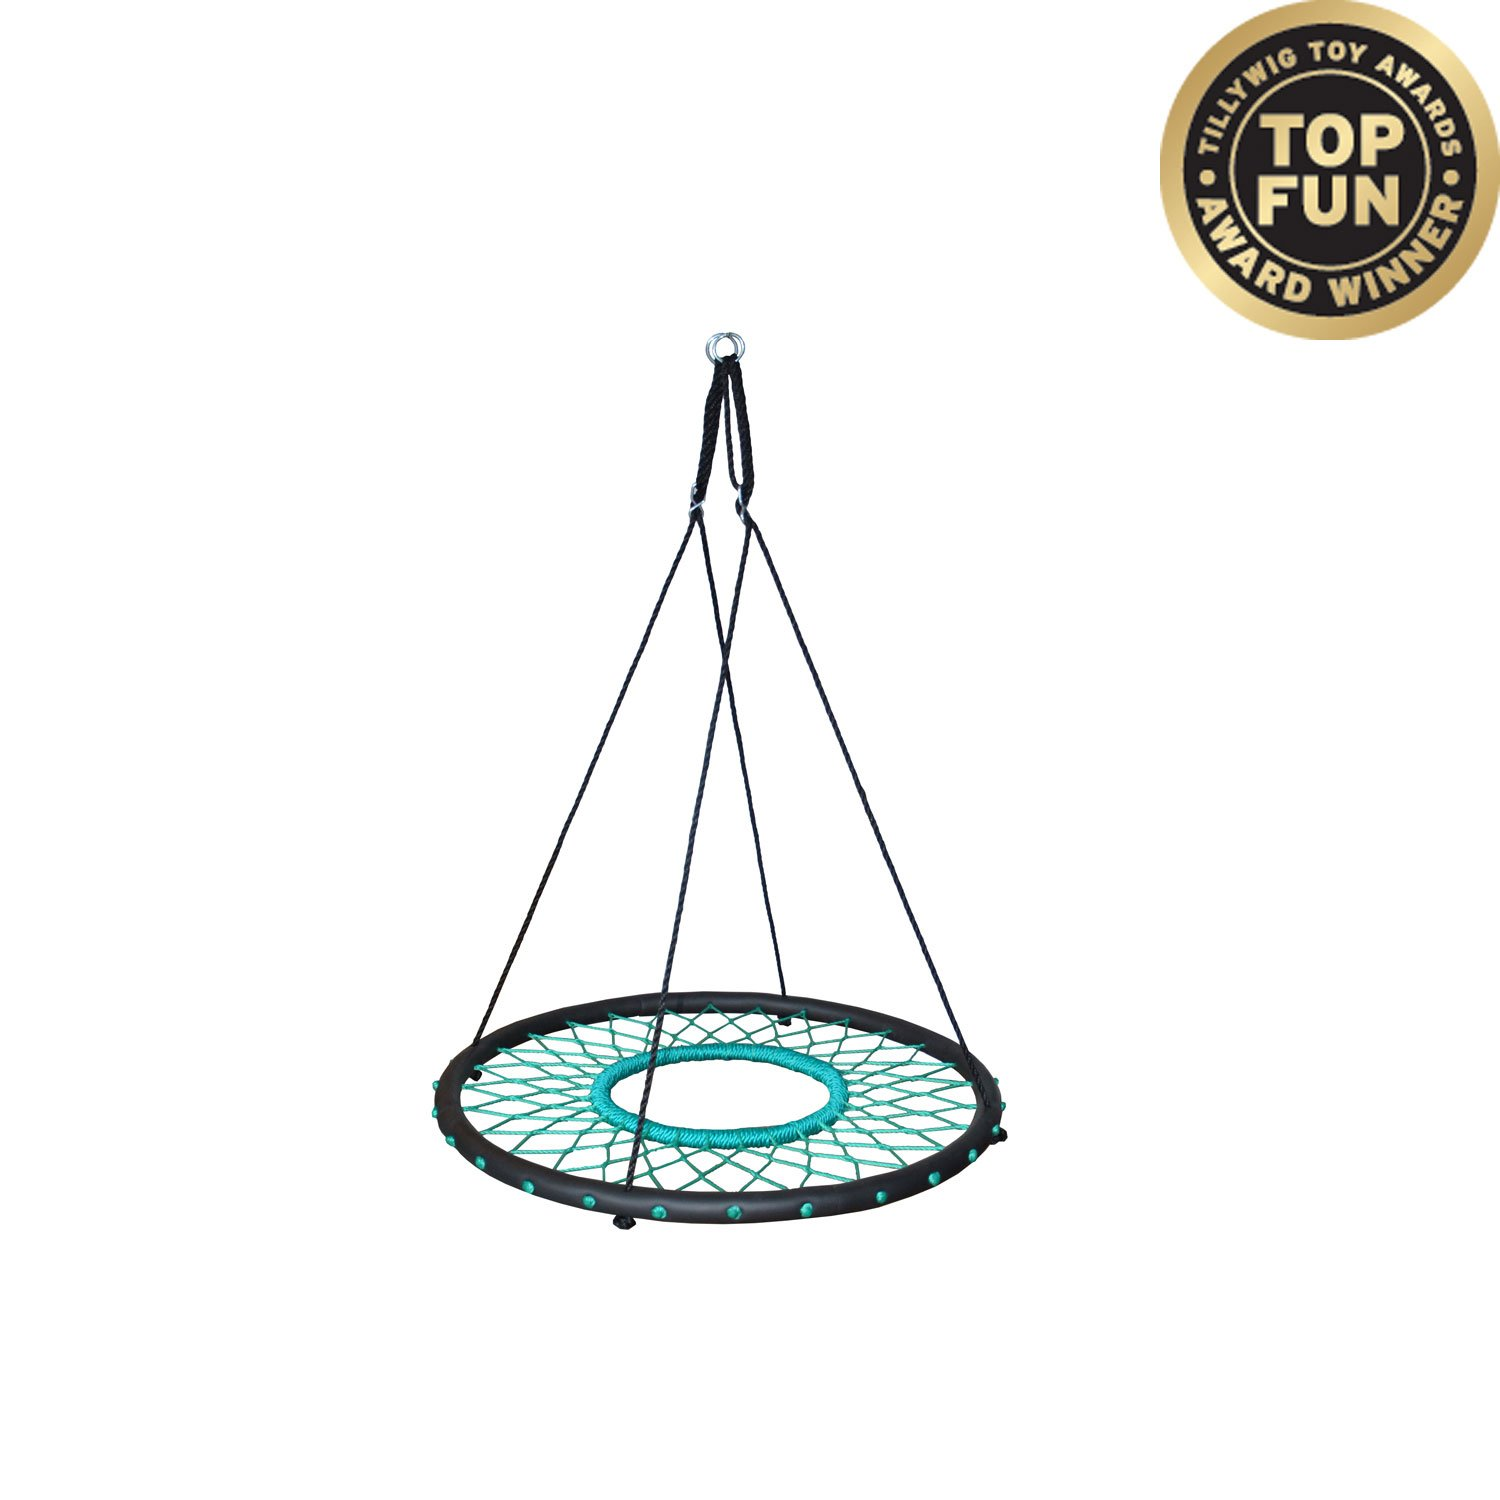 """Tarzan Tire 40"""" Spider Web Swing, Green – Tree Swing, Redesigned Tire Swing, Extra Safe and Durable, Swing with Friends, Easy Install for Swing Set or Tree"""